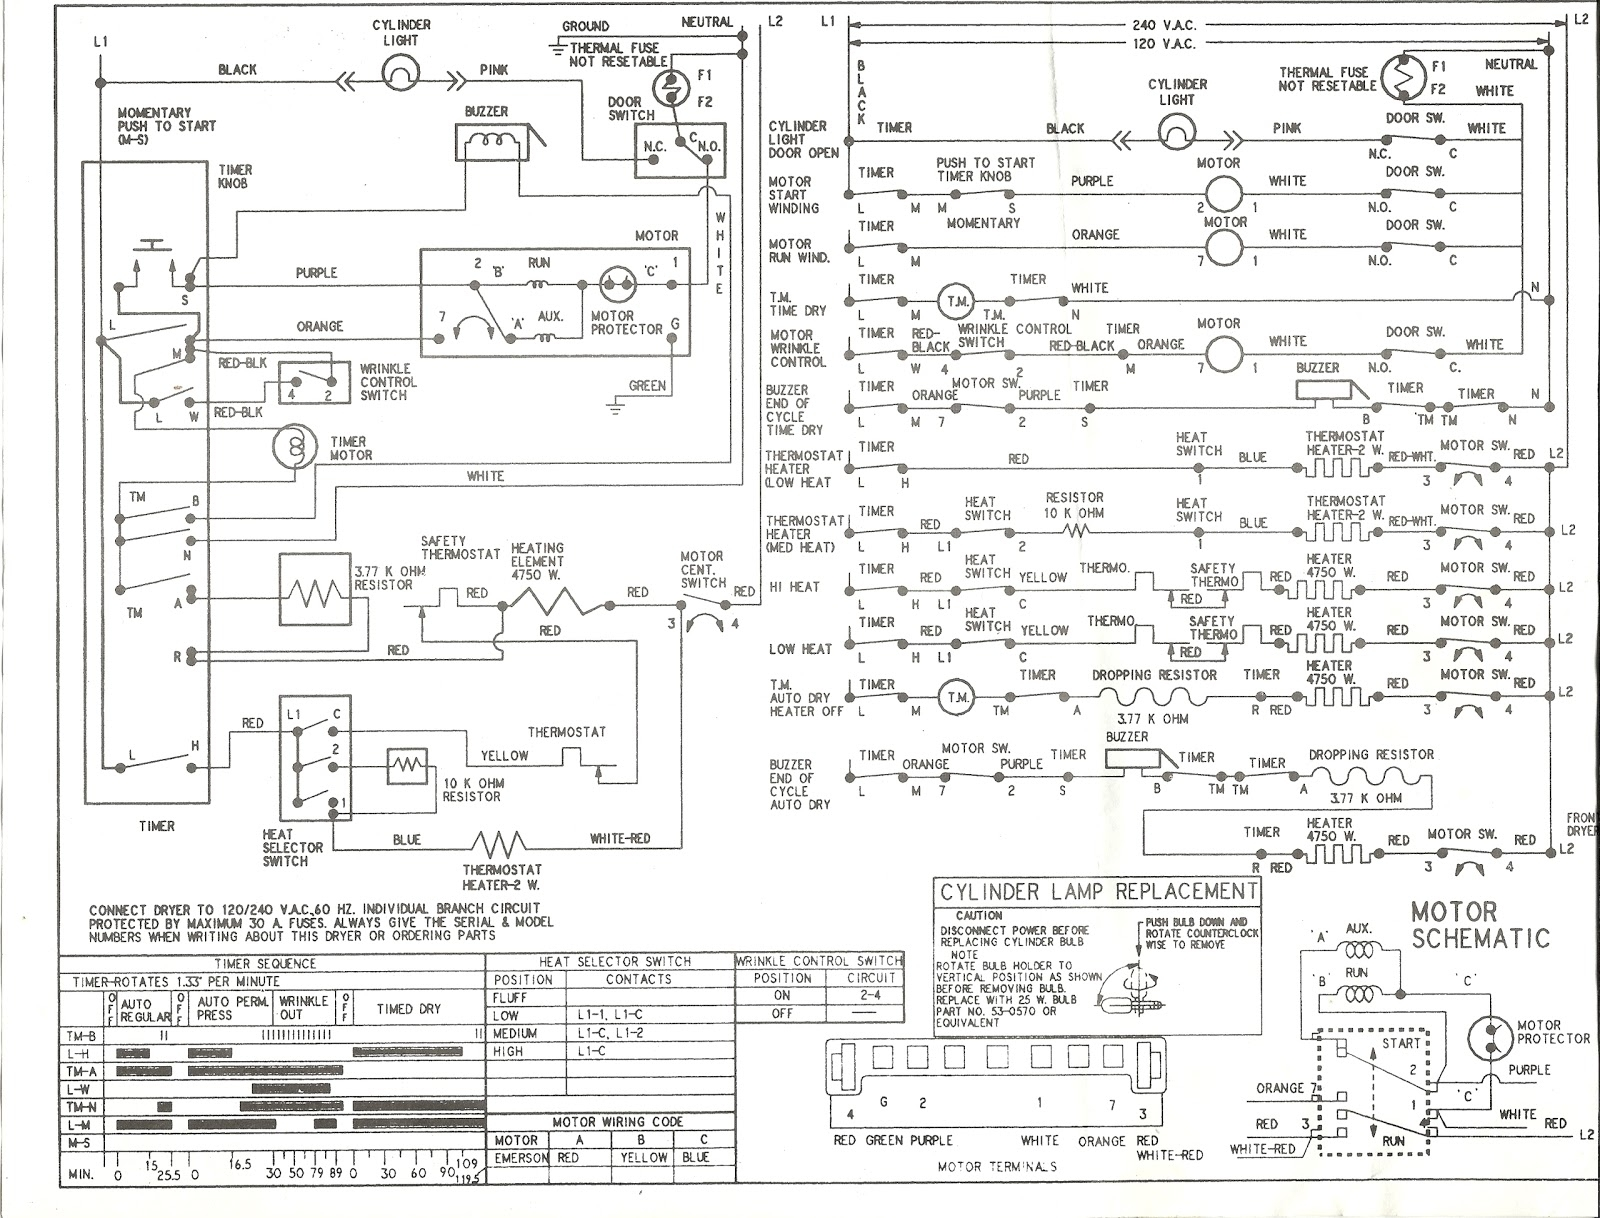 kenmore washer wiring diagram on wiring diagram parts wiring for kenmore 80 series washer parts diagram 3800 series 2 wiring diagram gm ecu pinout \u2022 wiring diagrams j  at readyjetset.co